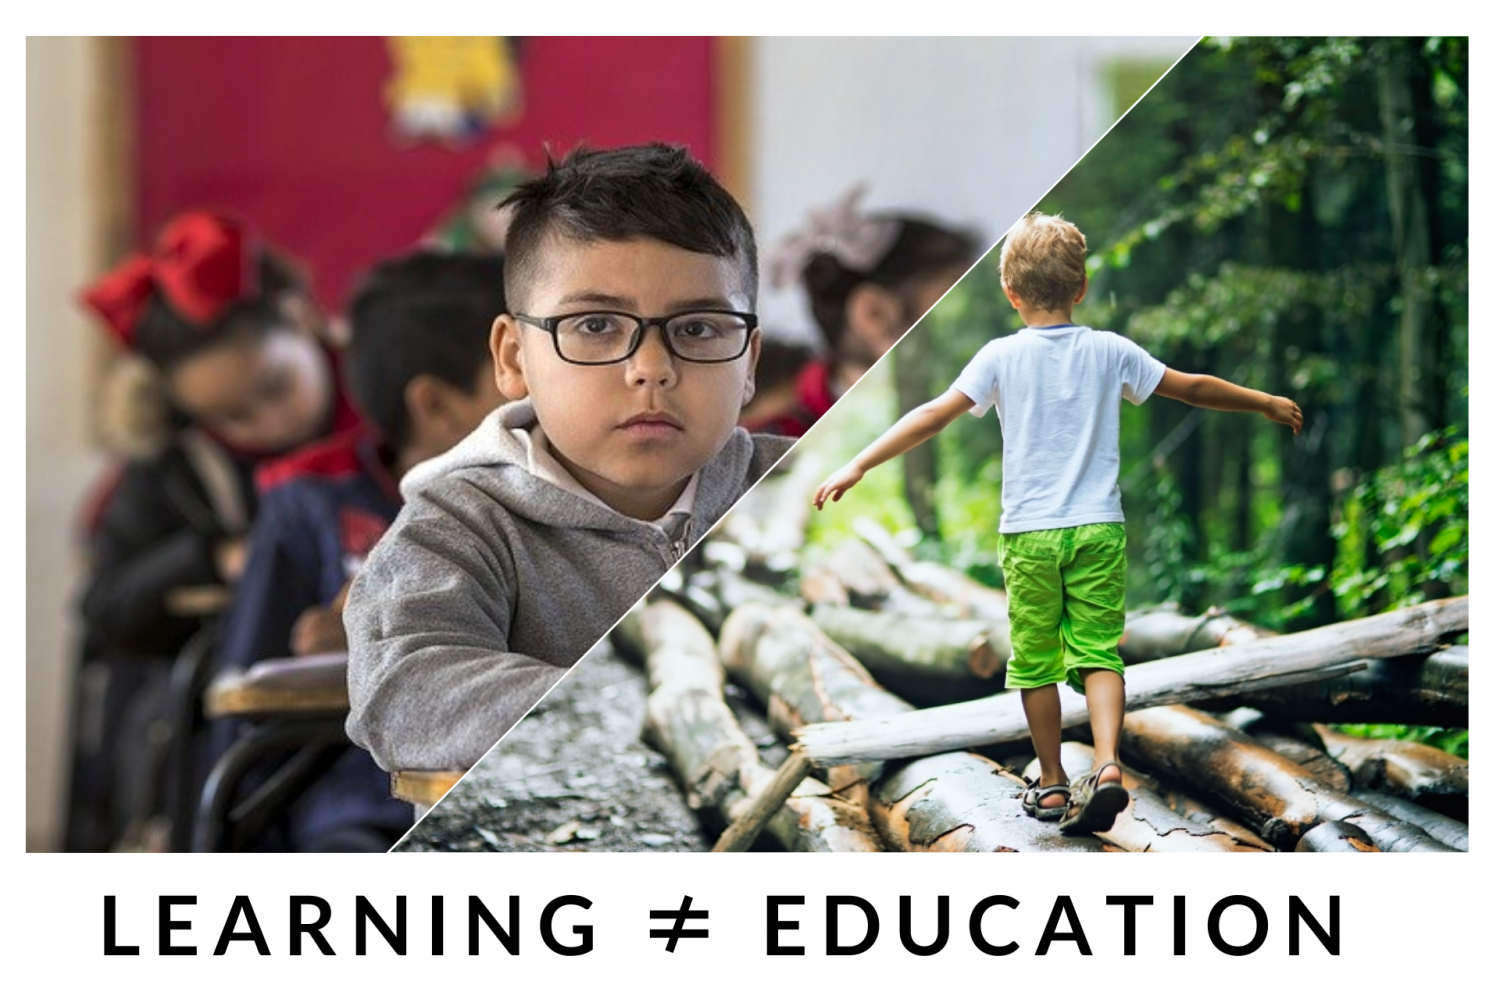 Learning ≠ Education